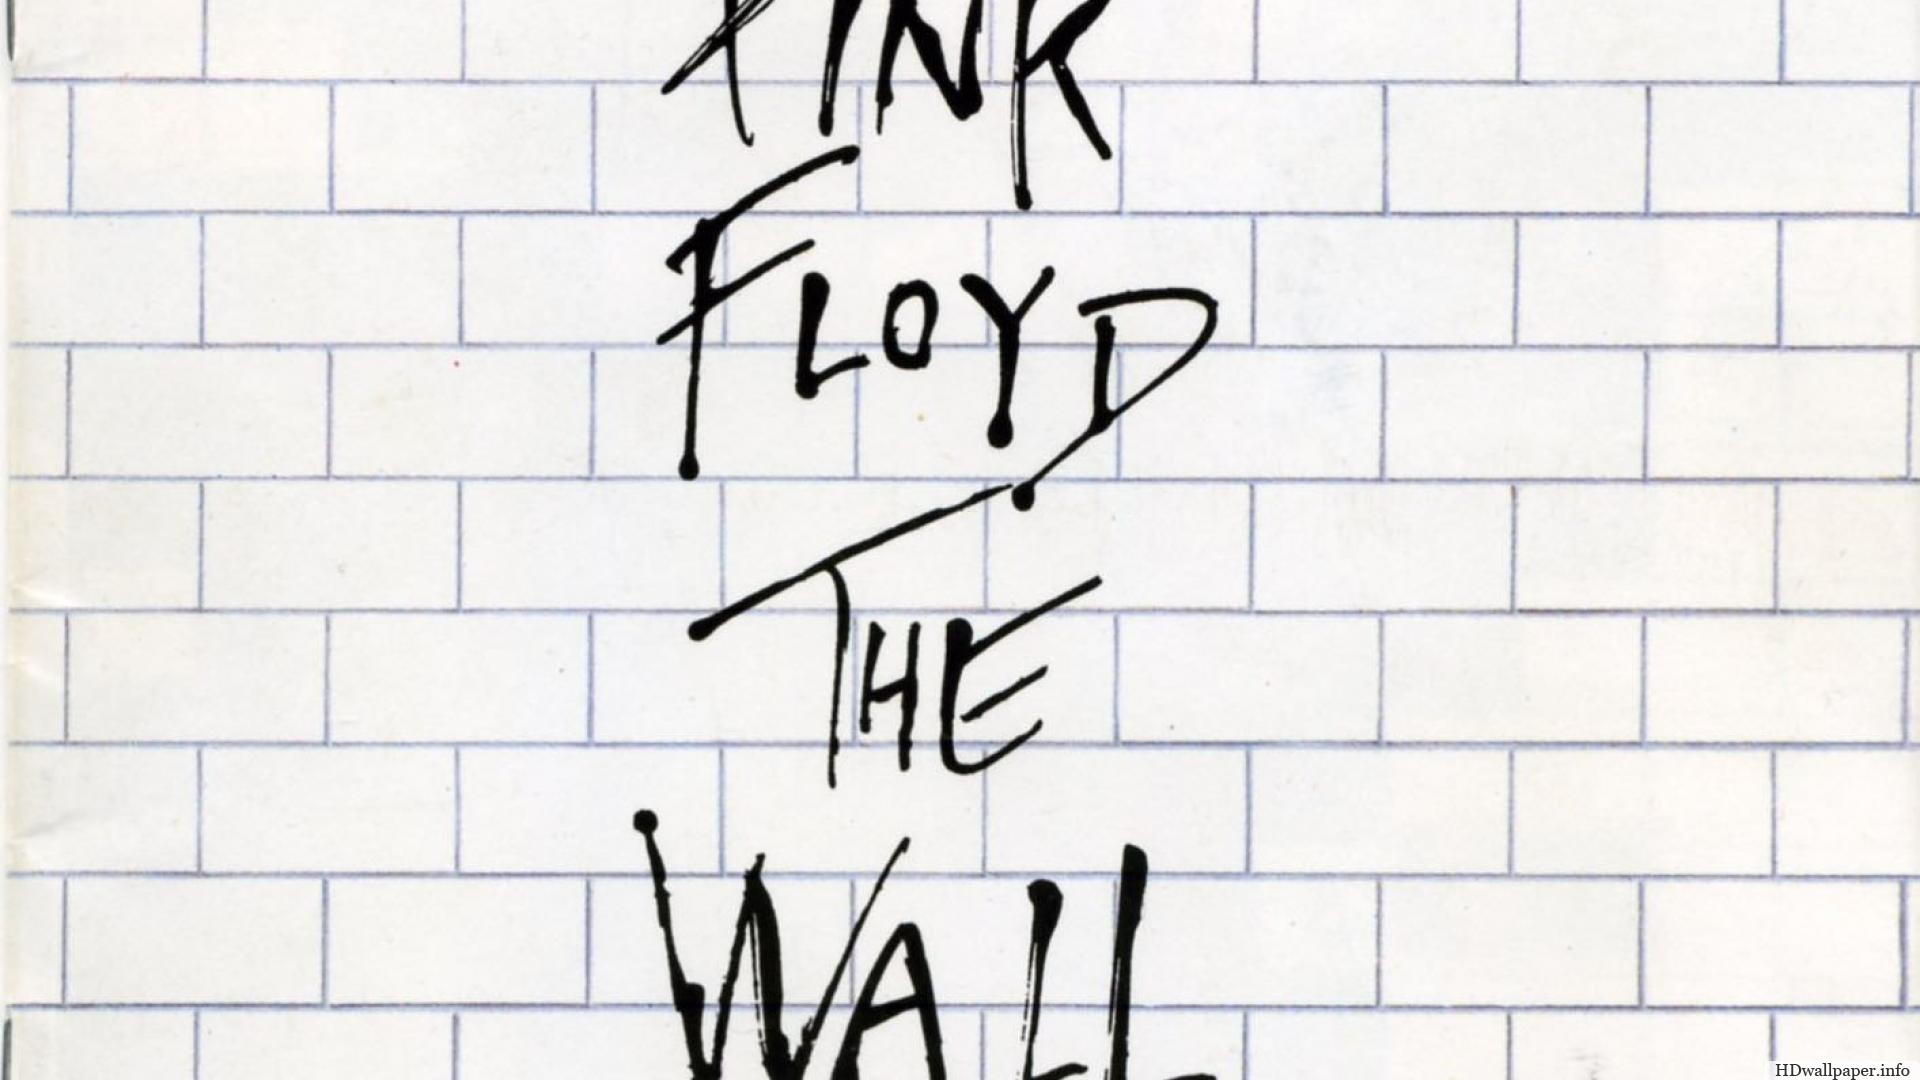 1920x1080 Explore Wall Wallpaper, Pink Floyd, and more!